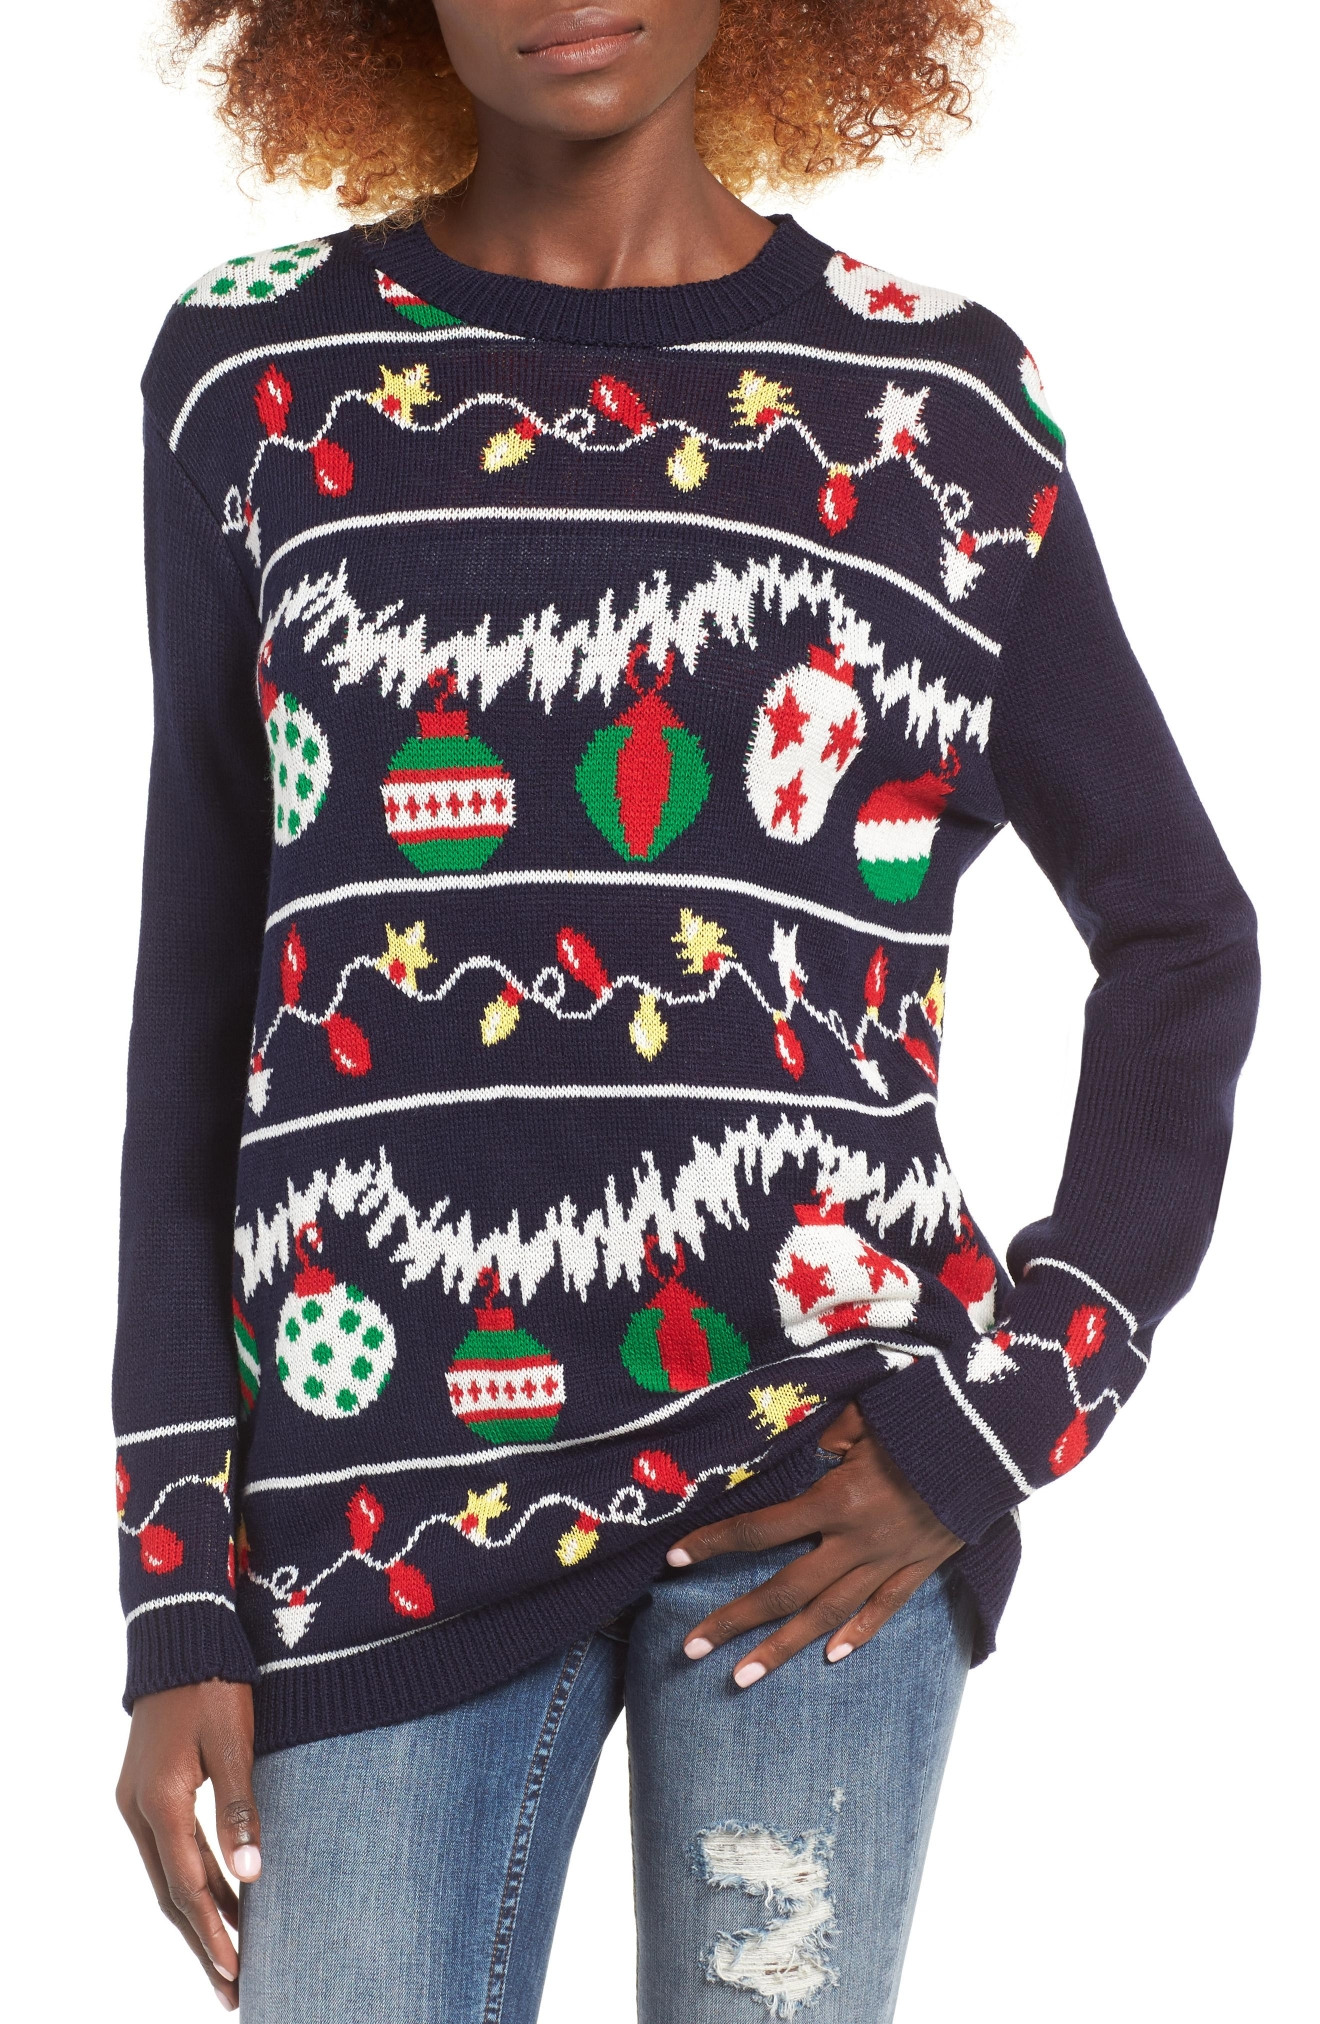 Cotton Emporium Ornament Christmas Sweater, $42 (Photo: Nordstrom)